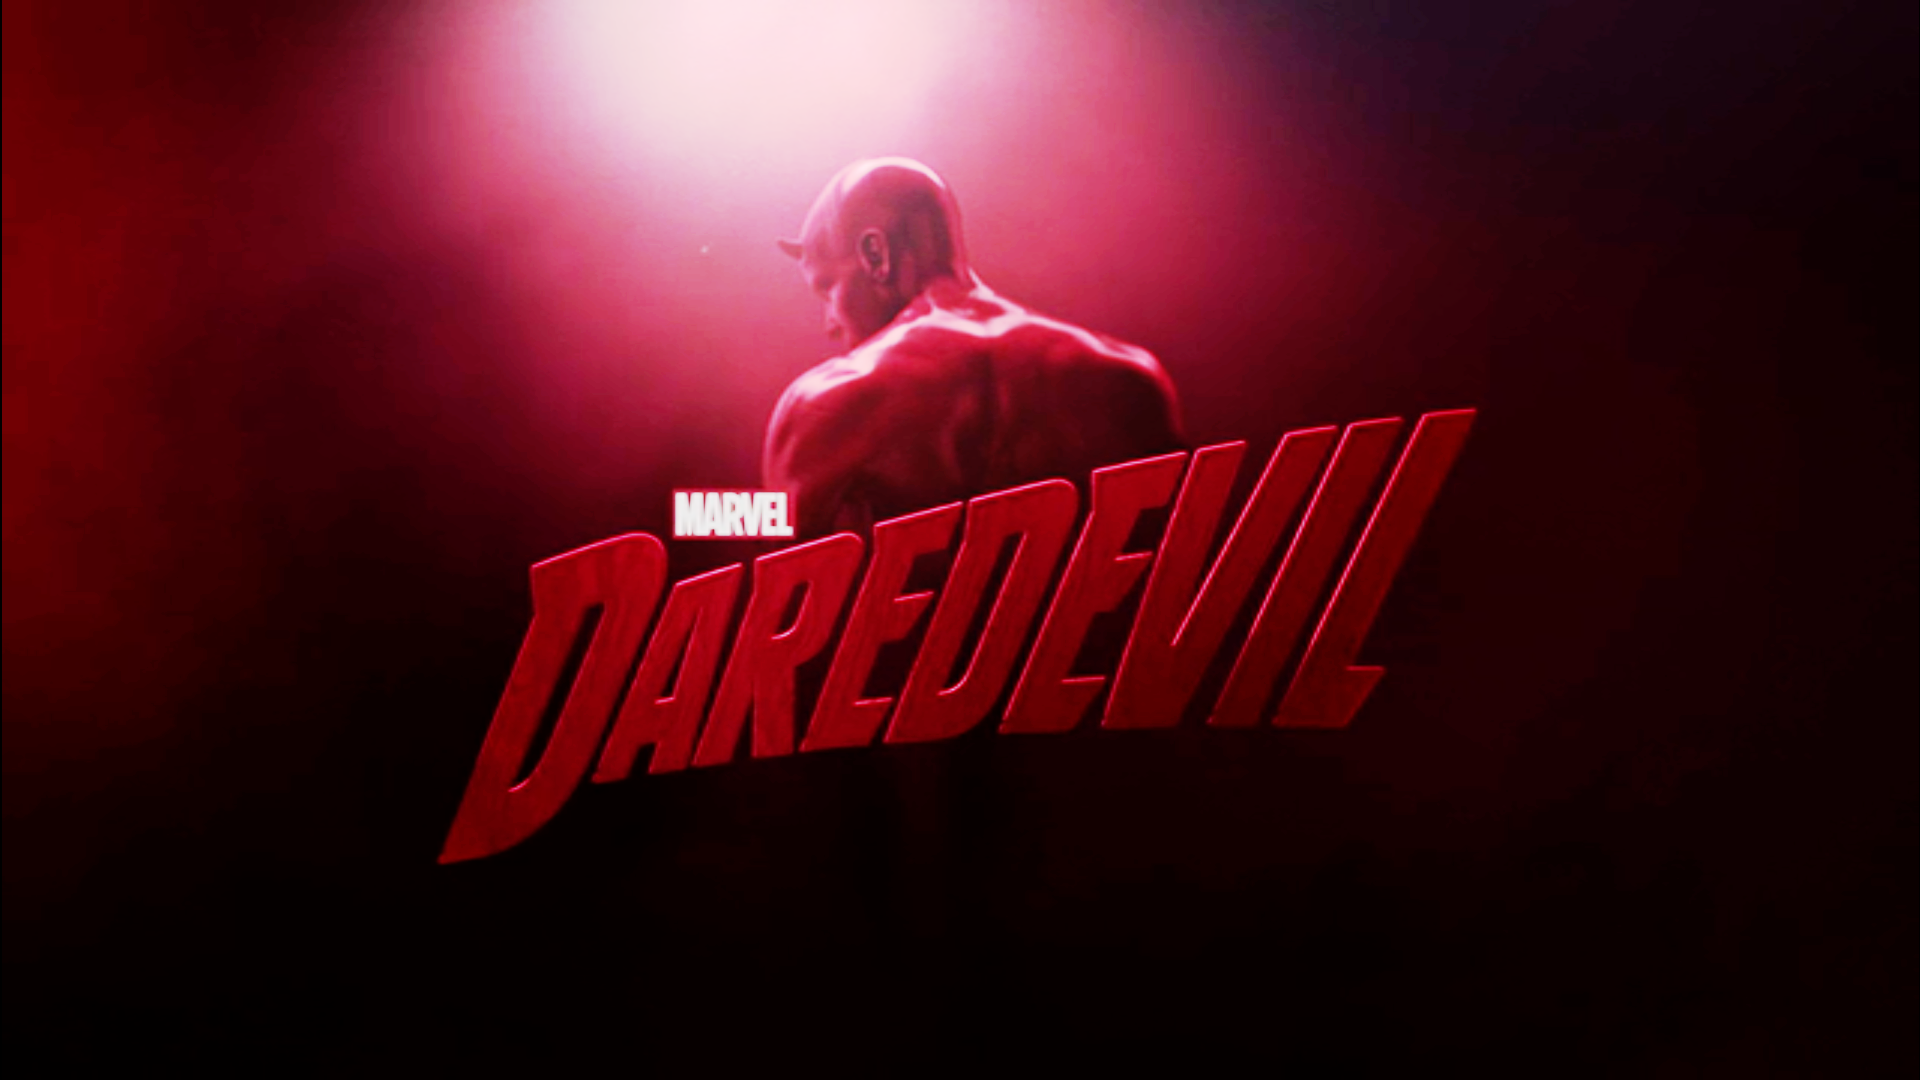 daredevil season 2 logo - photo #7